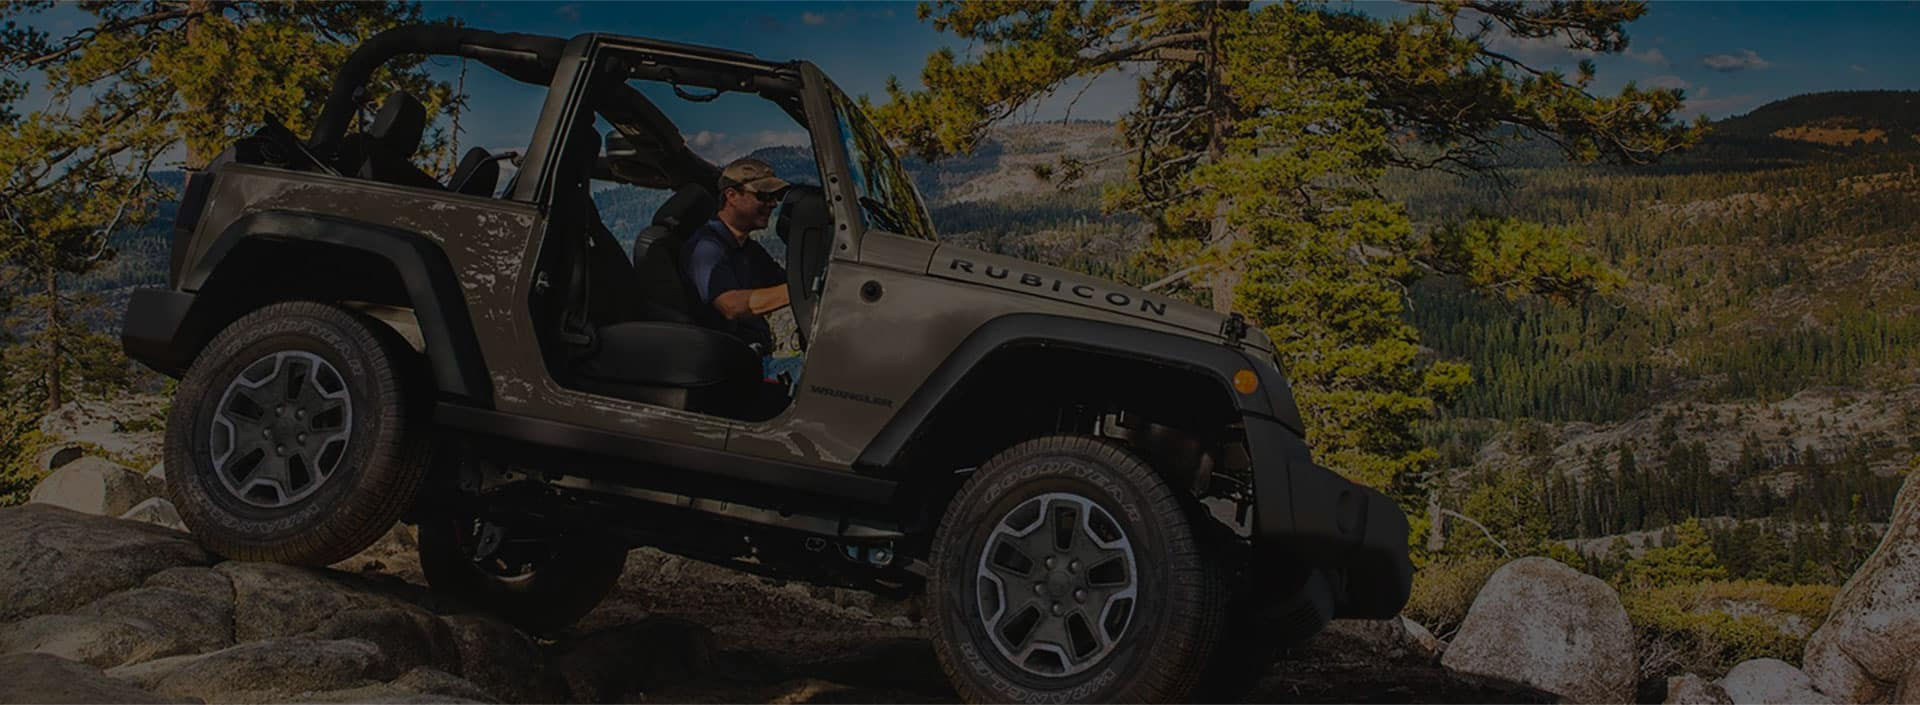 2017-Jeep-Wrangler-Gallery-Capability-Offroad-Boulders.jpg.image